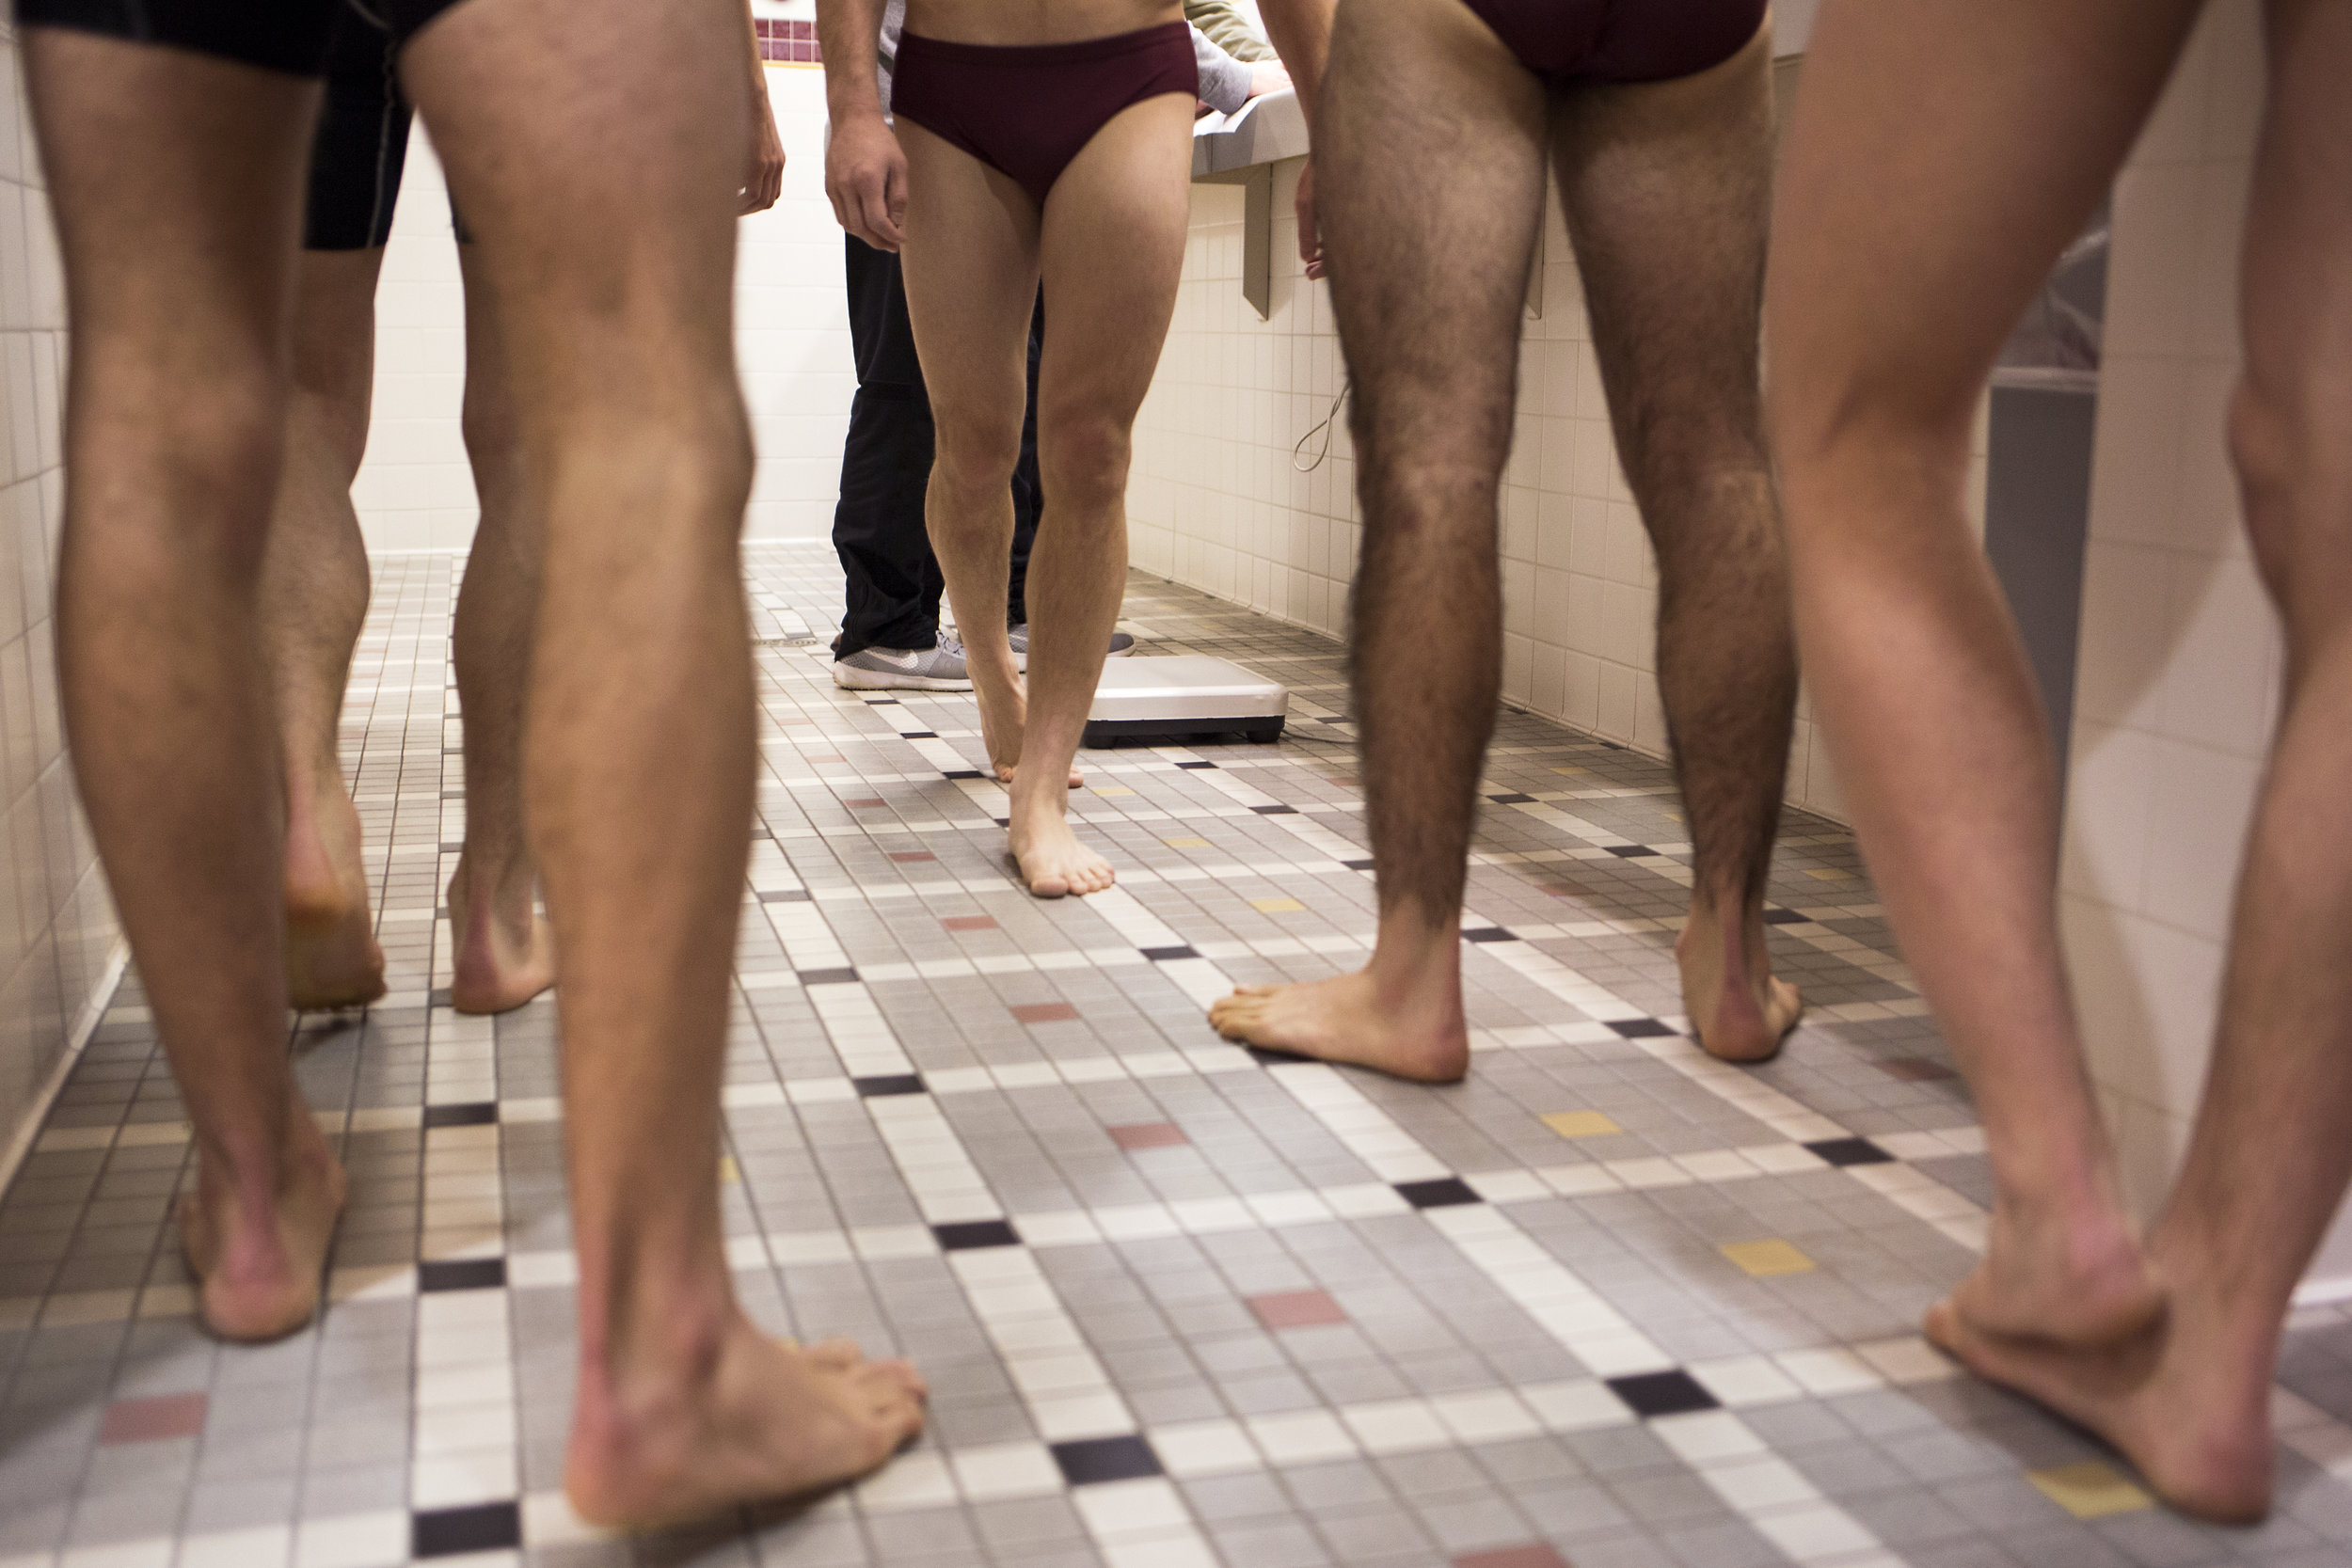 The wrestling team prepares to step onto the scale to be weighed by an official. Within the hour before each competition, officials make sure that each athlete's weight does not exceed the limit for his competitive class.